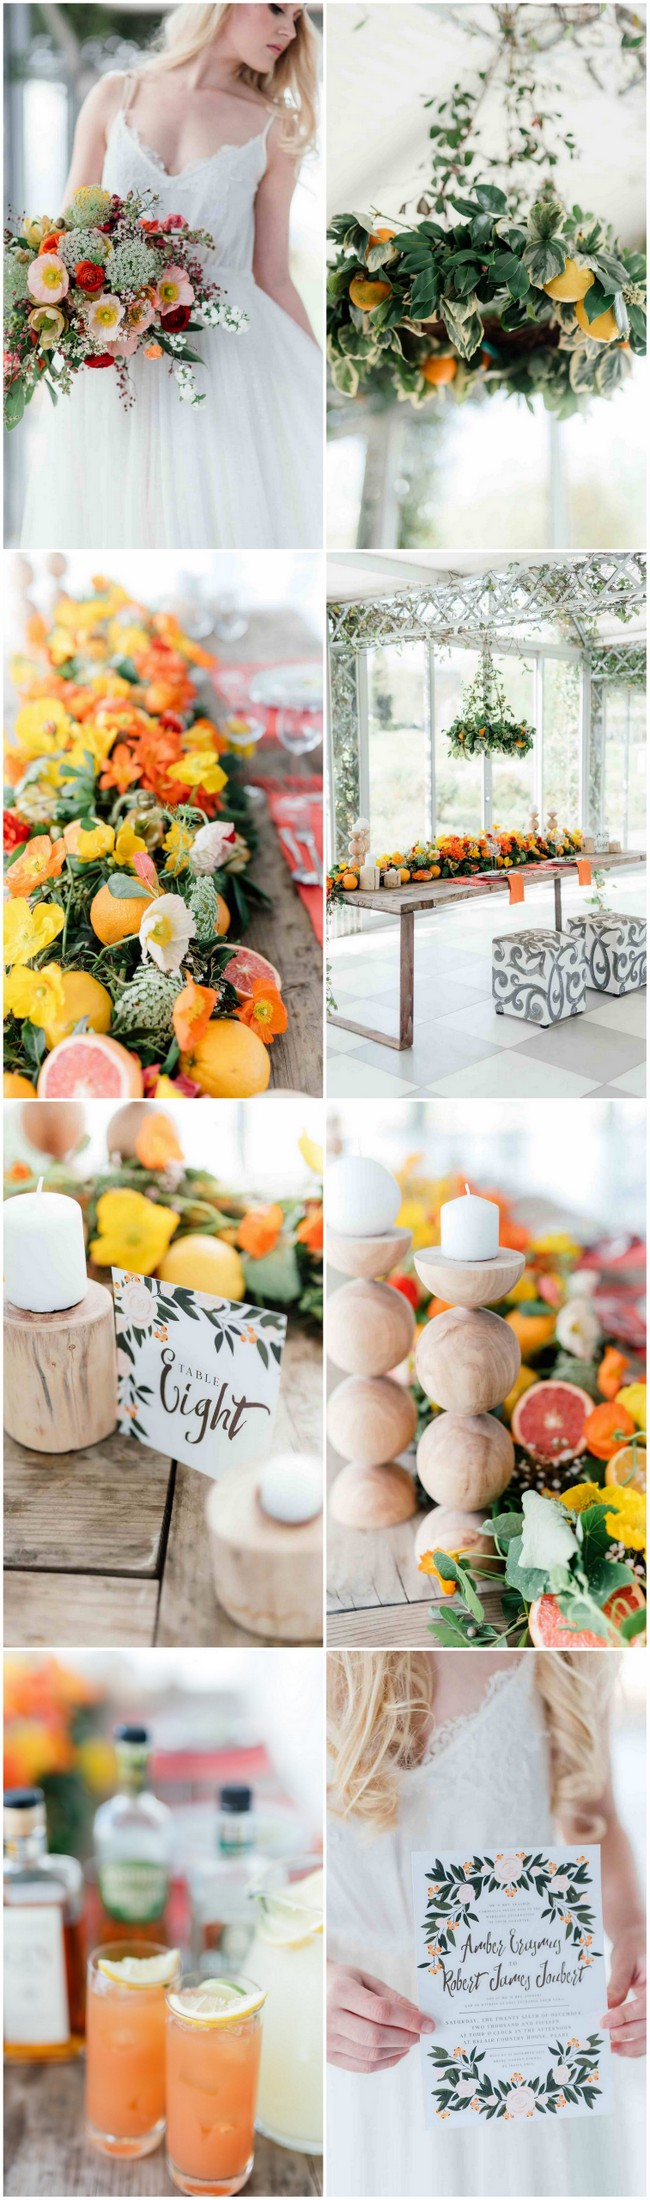 Citrus Wedding Ideas 2